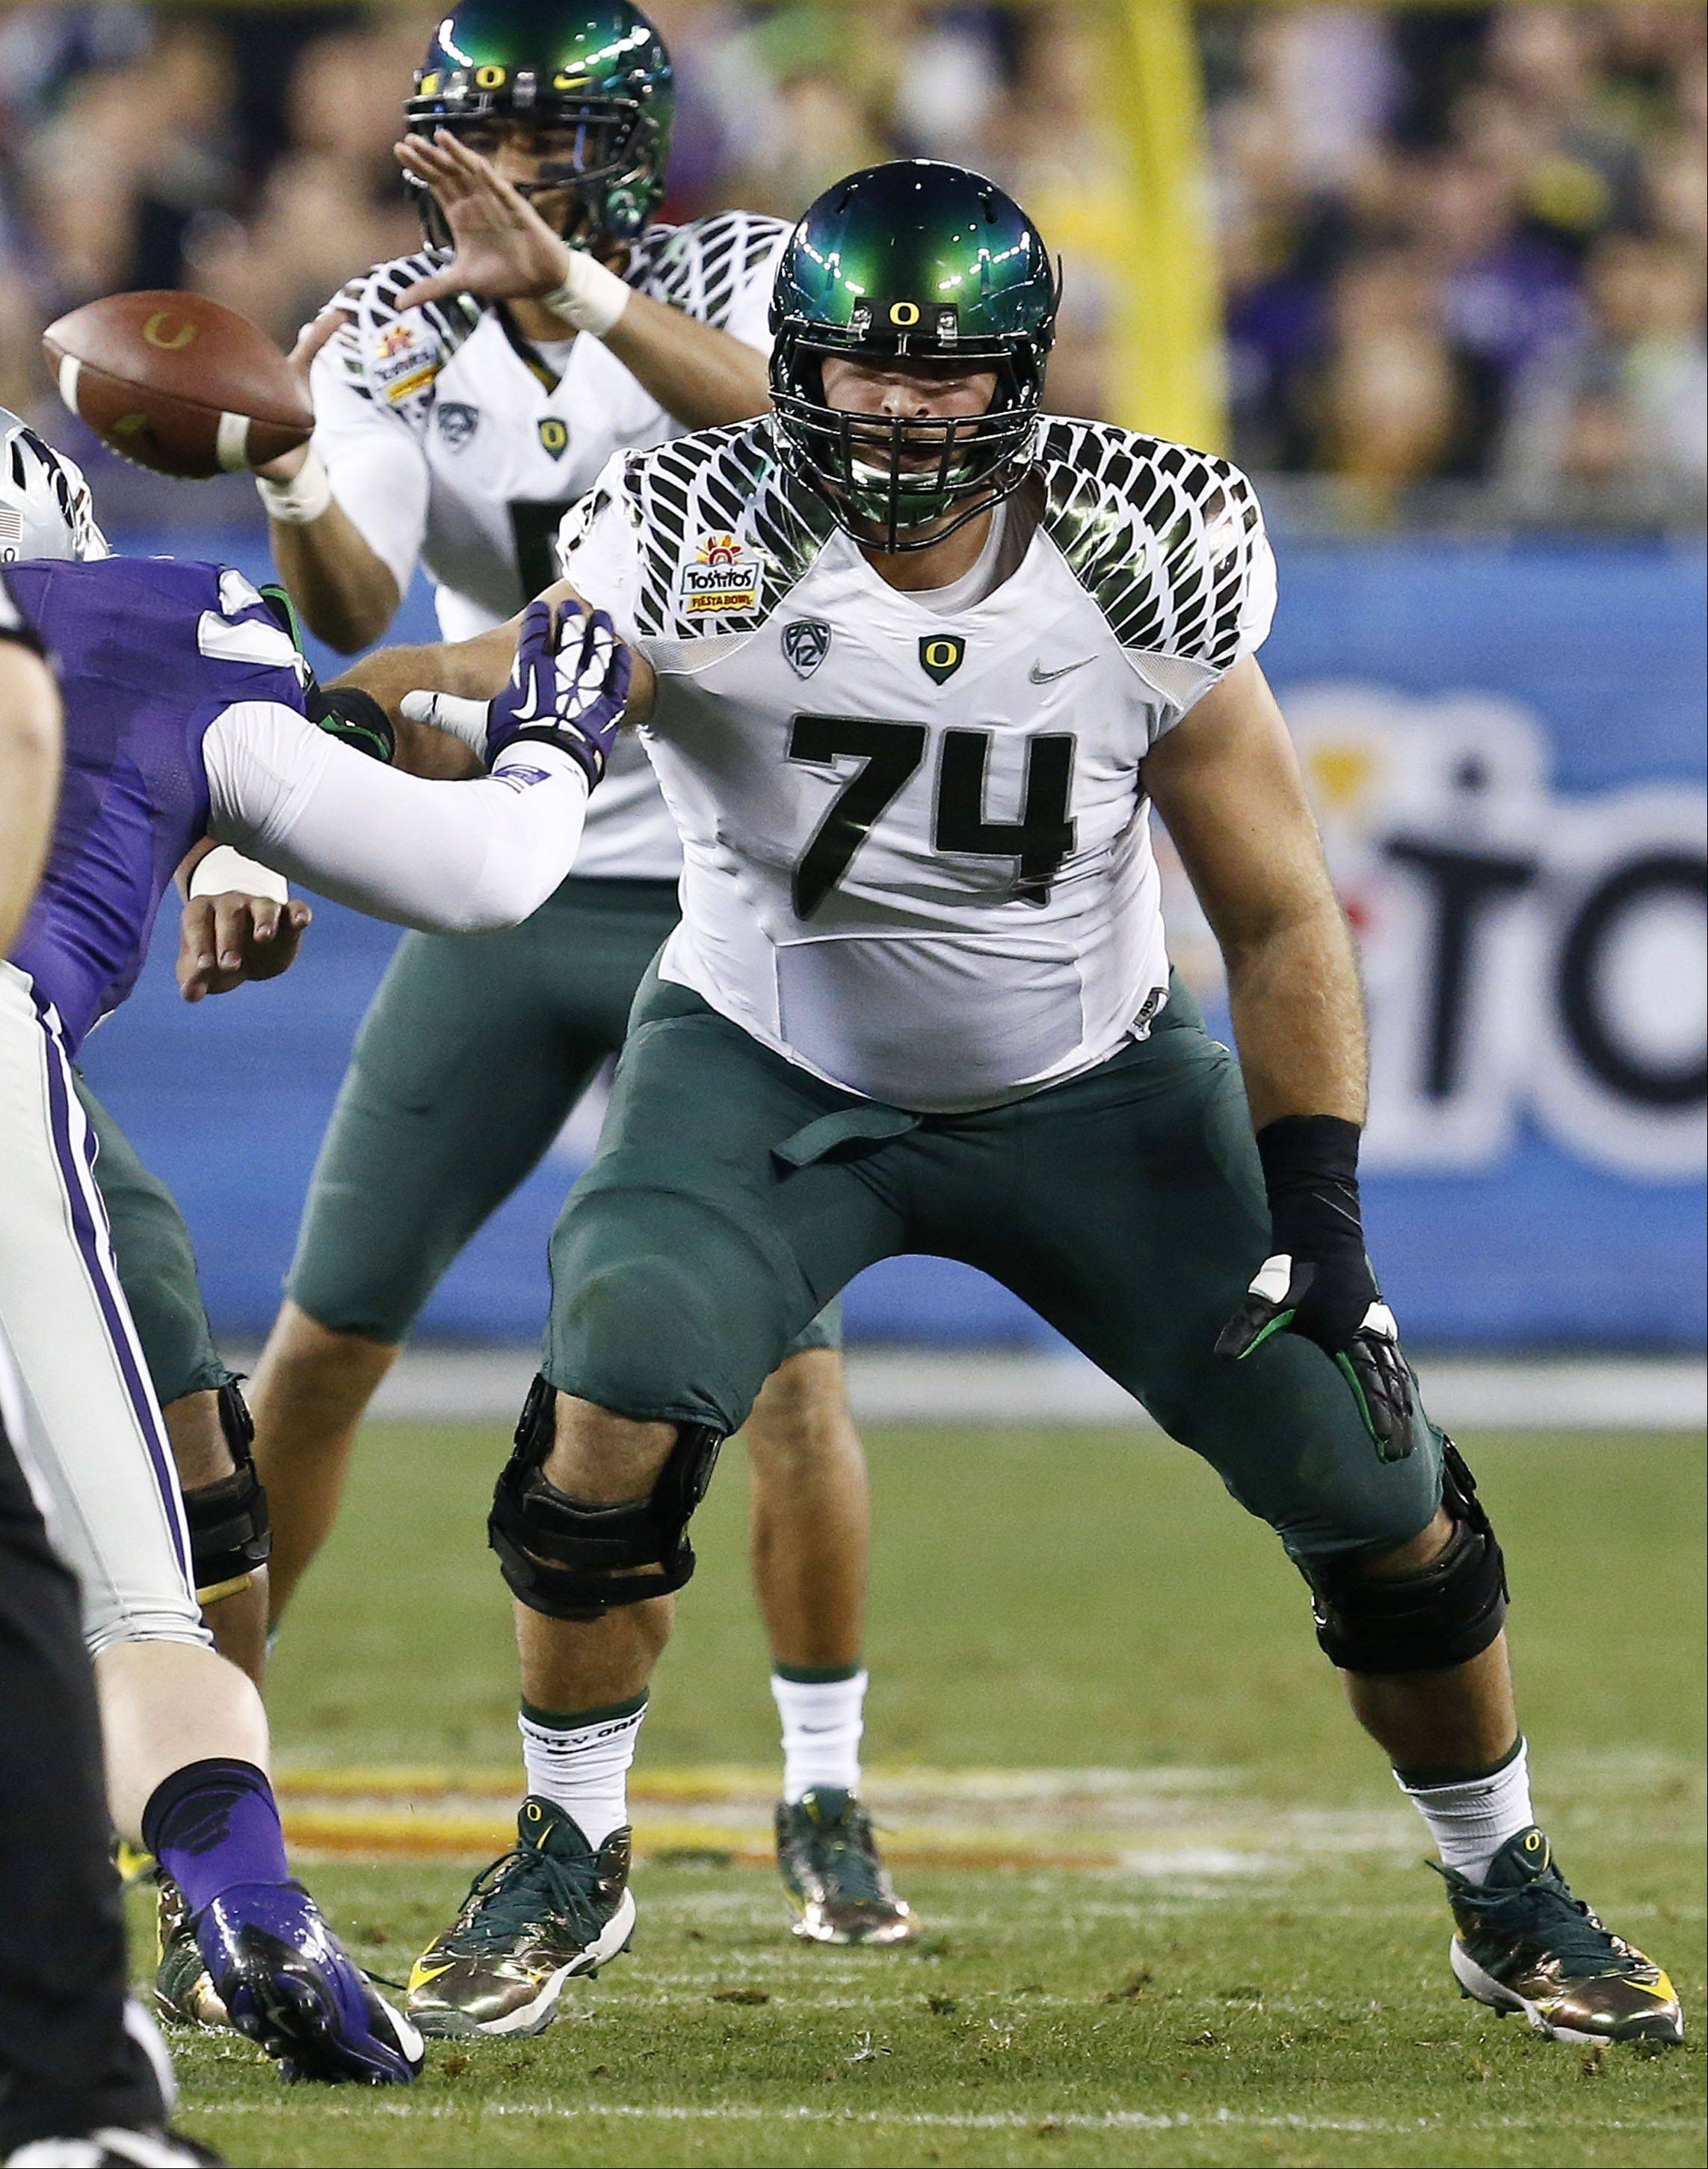 Oregon's Kyle Long (74) blocks Kansas State defender during the Fiesta Bowl NCAA college football game Thursday, Jan. 3, 2013, in Glendale, Ariz. Oregon defeated Kansas State 35-17.